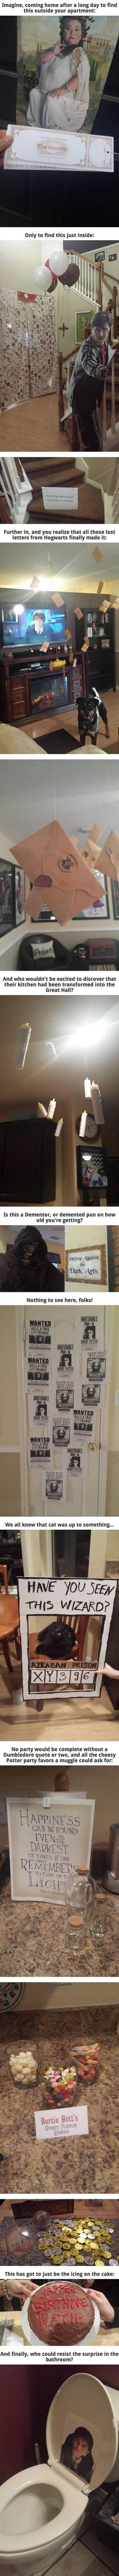 Awesome Harry Potter themed birthday party